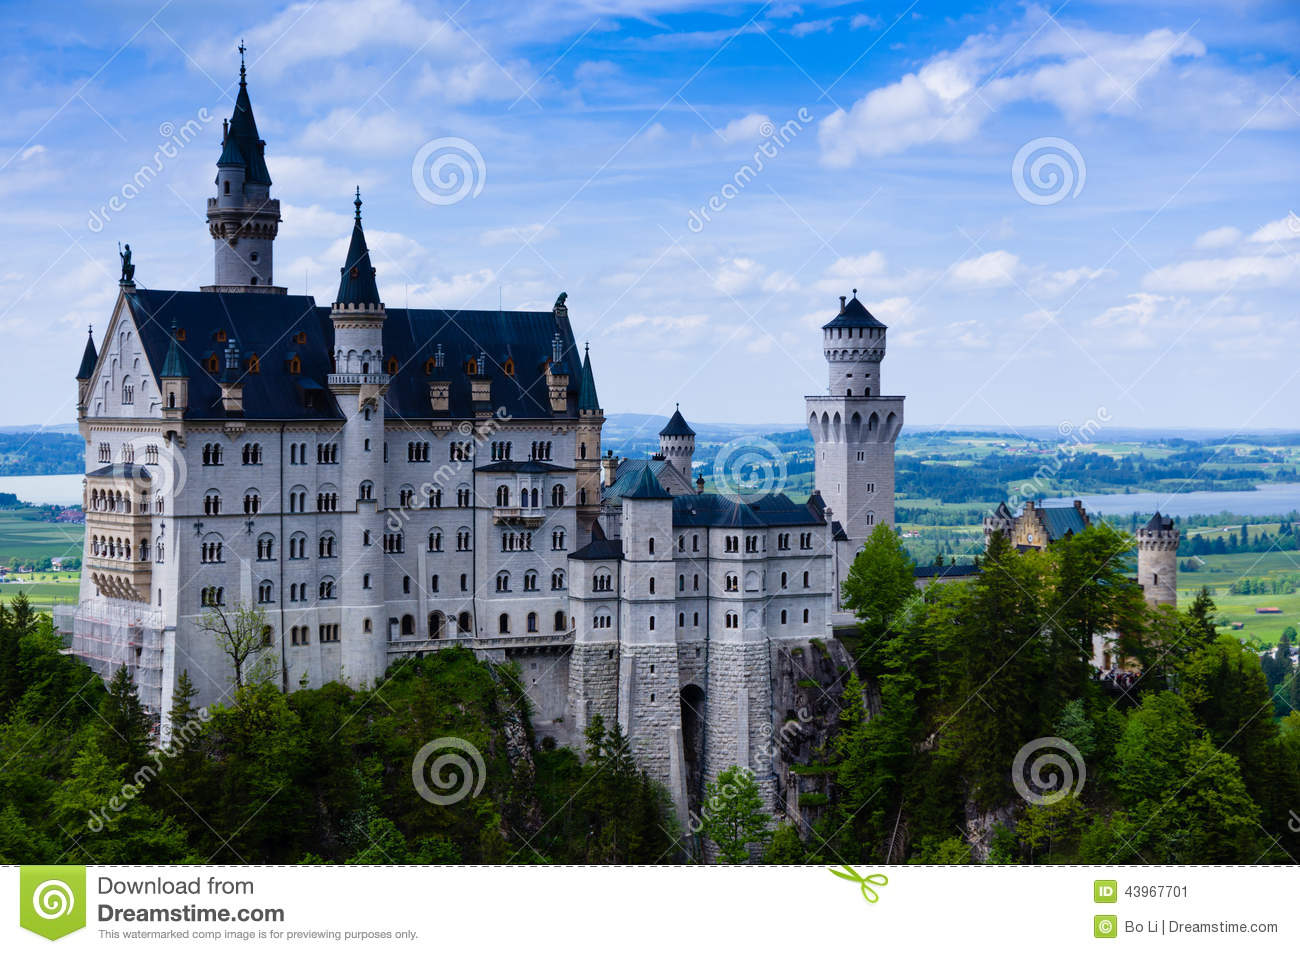 Neuschwanstein Castle(New Swanstone Castle) Stock Image - Image of ...